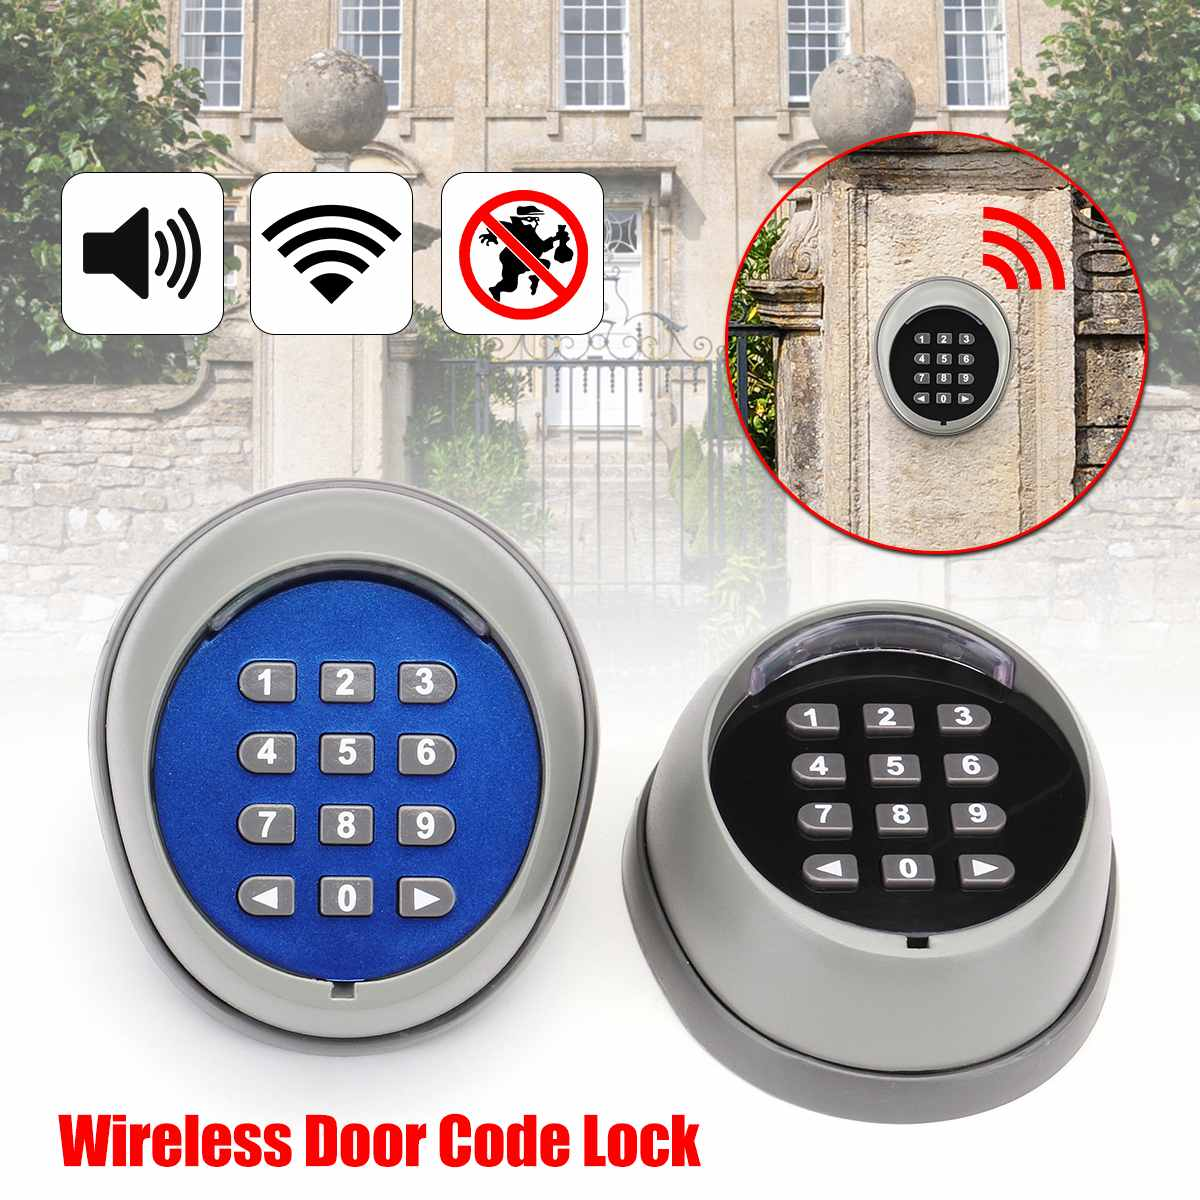 Home Wireless Black ABS Universal Durable Security Smart Easy Install Password Lock Remote Control Keyless Code Small Door